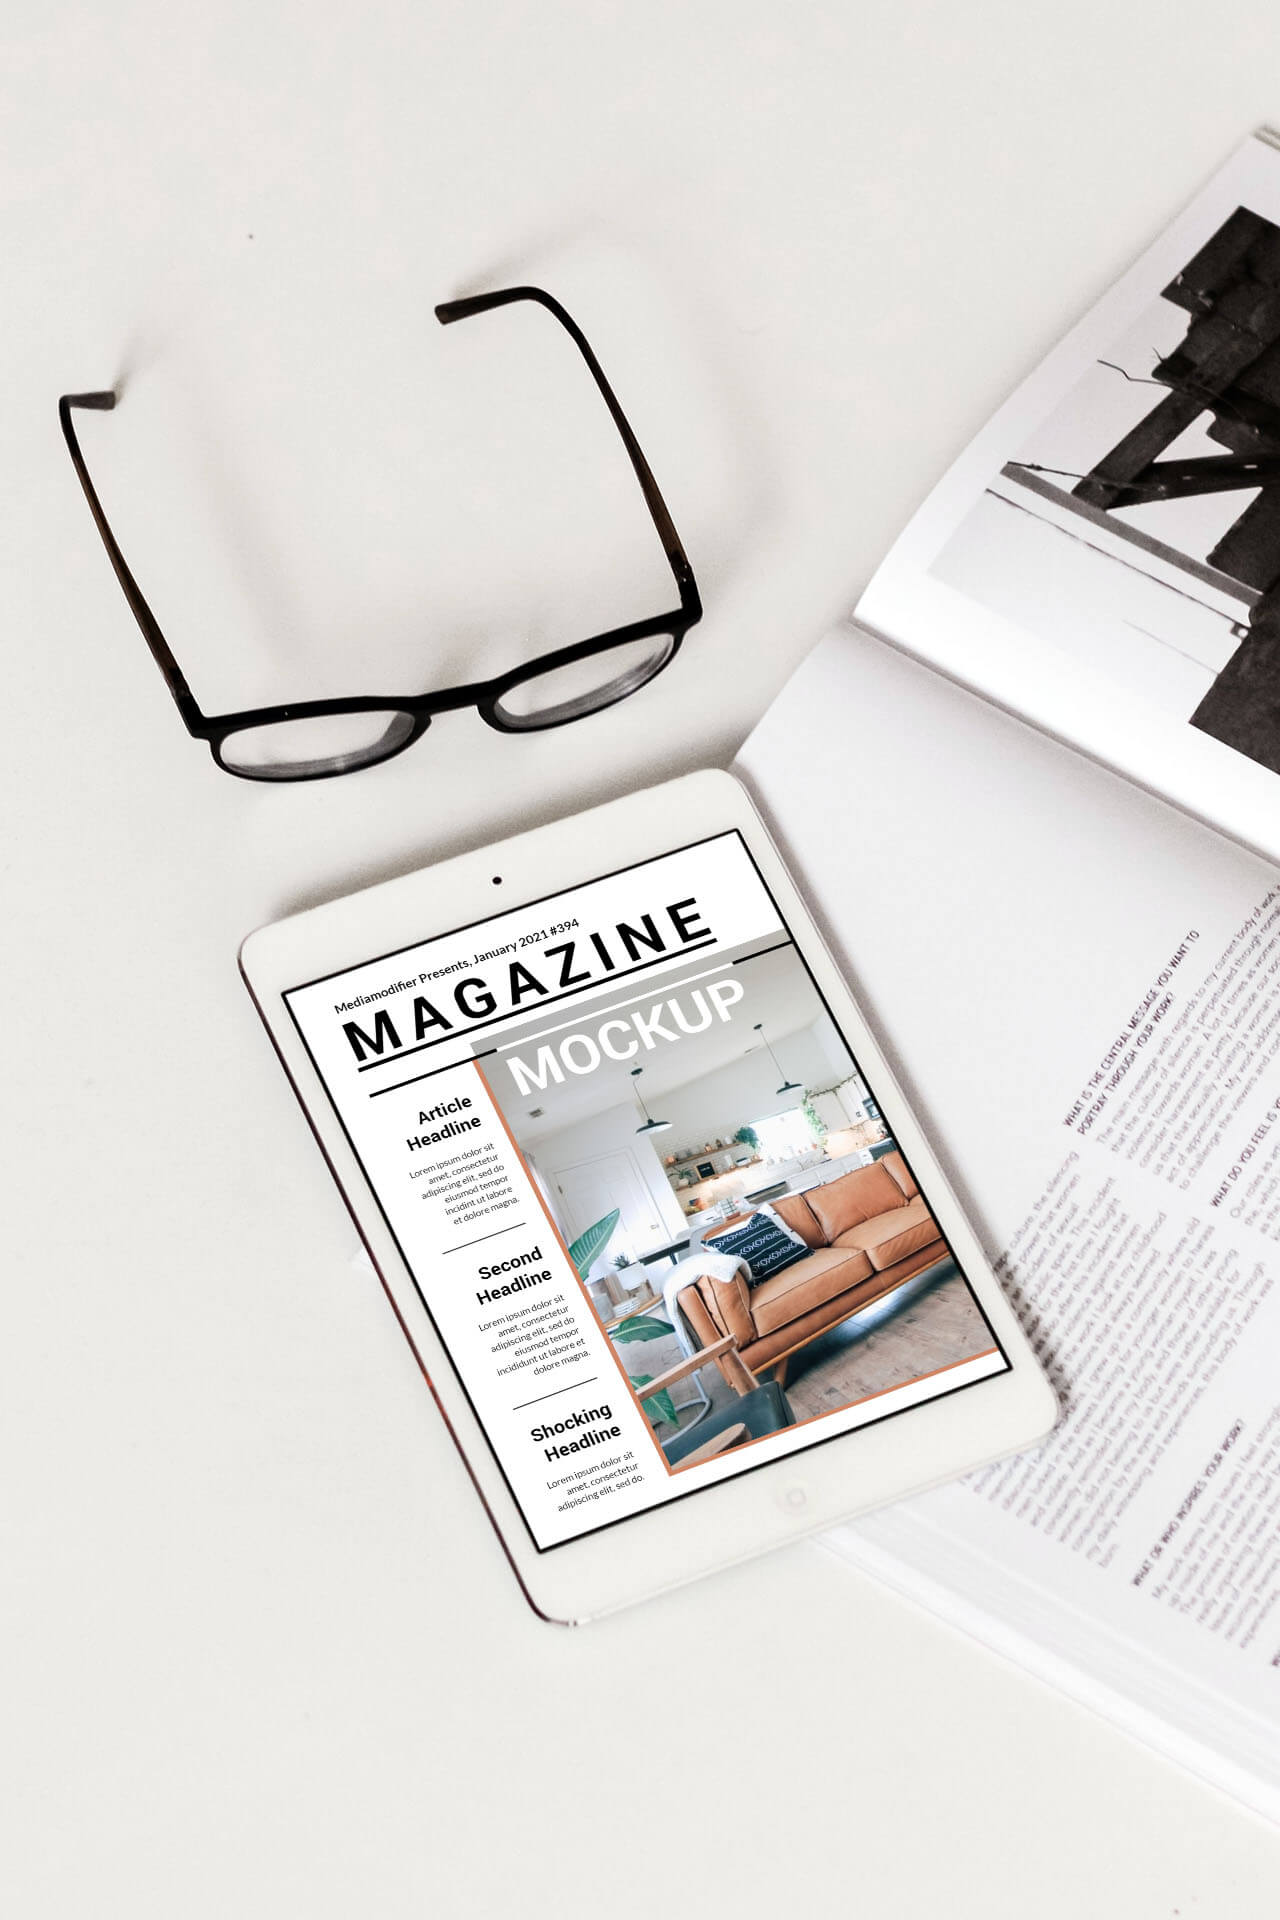 13-cover-mockup-of-a-magazine-on-desk